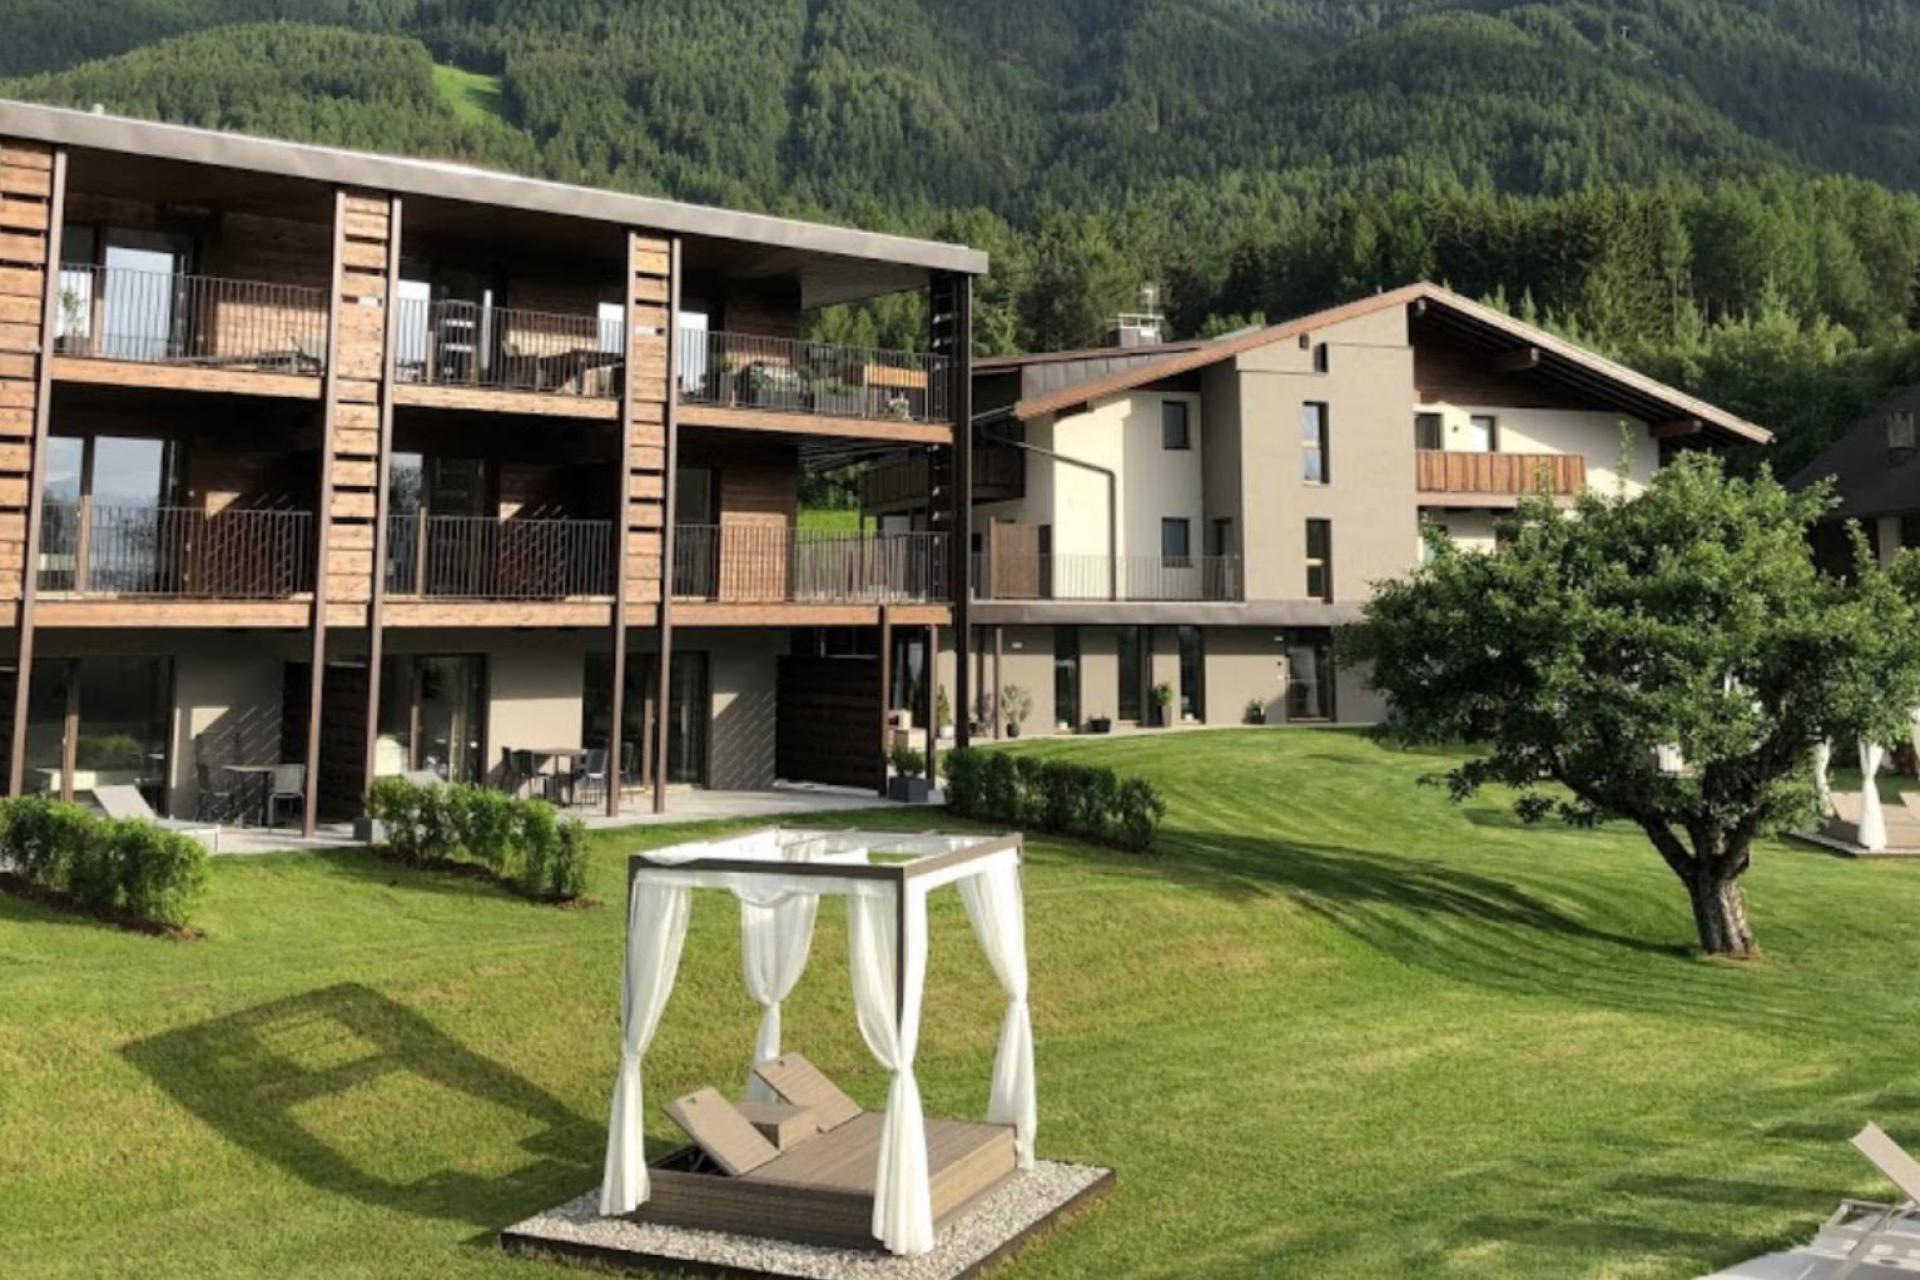 Agriturismo Dolomites Residence within walking distance of a village and ski lift